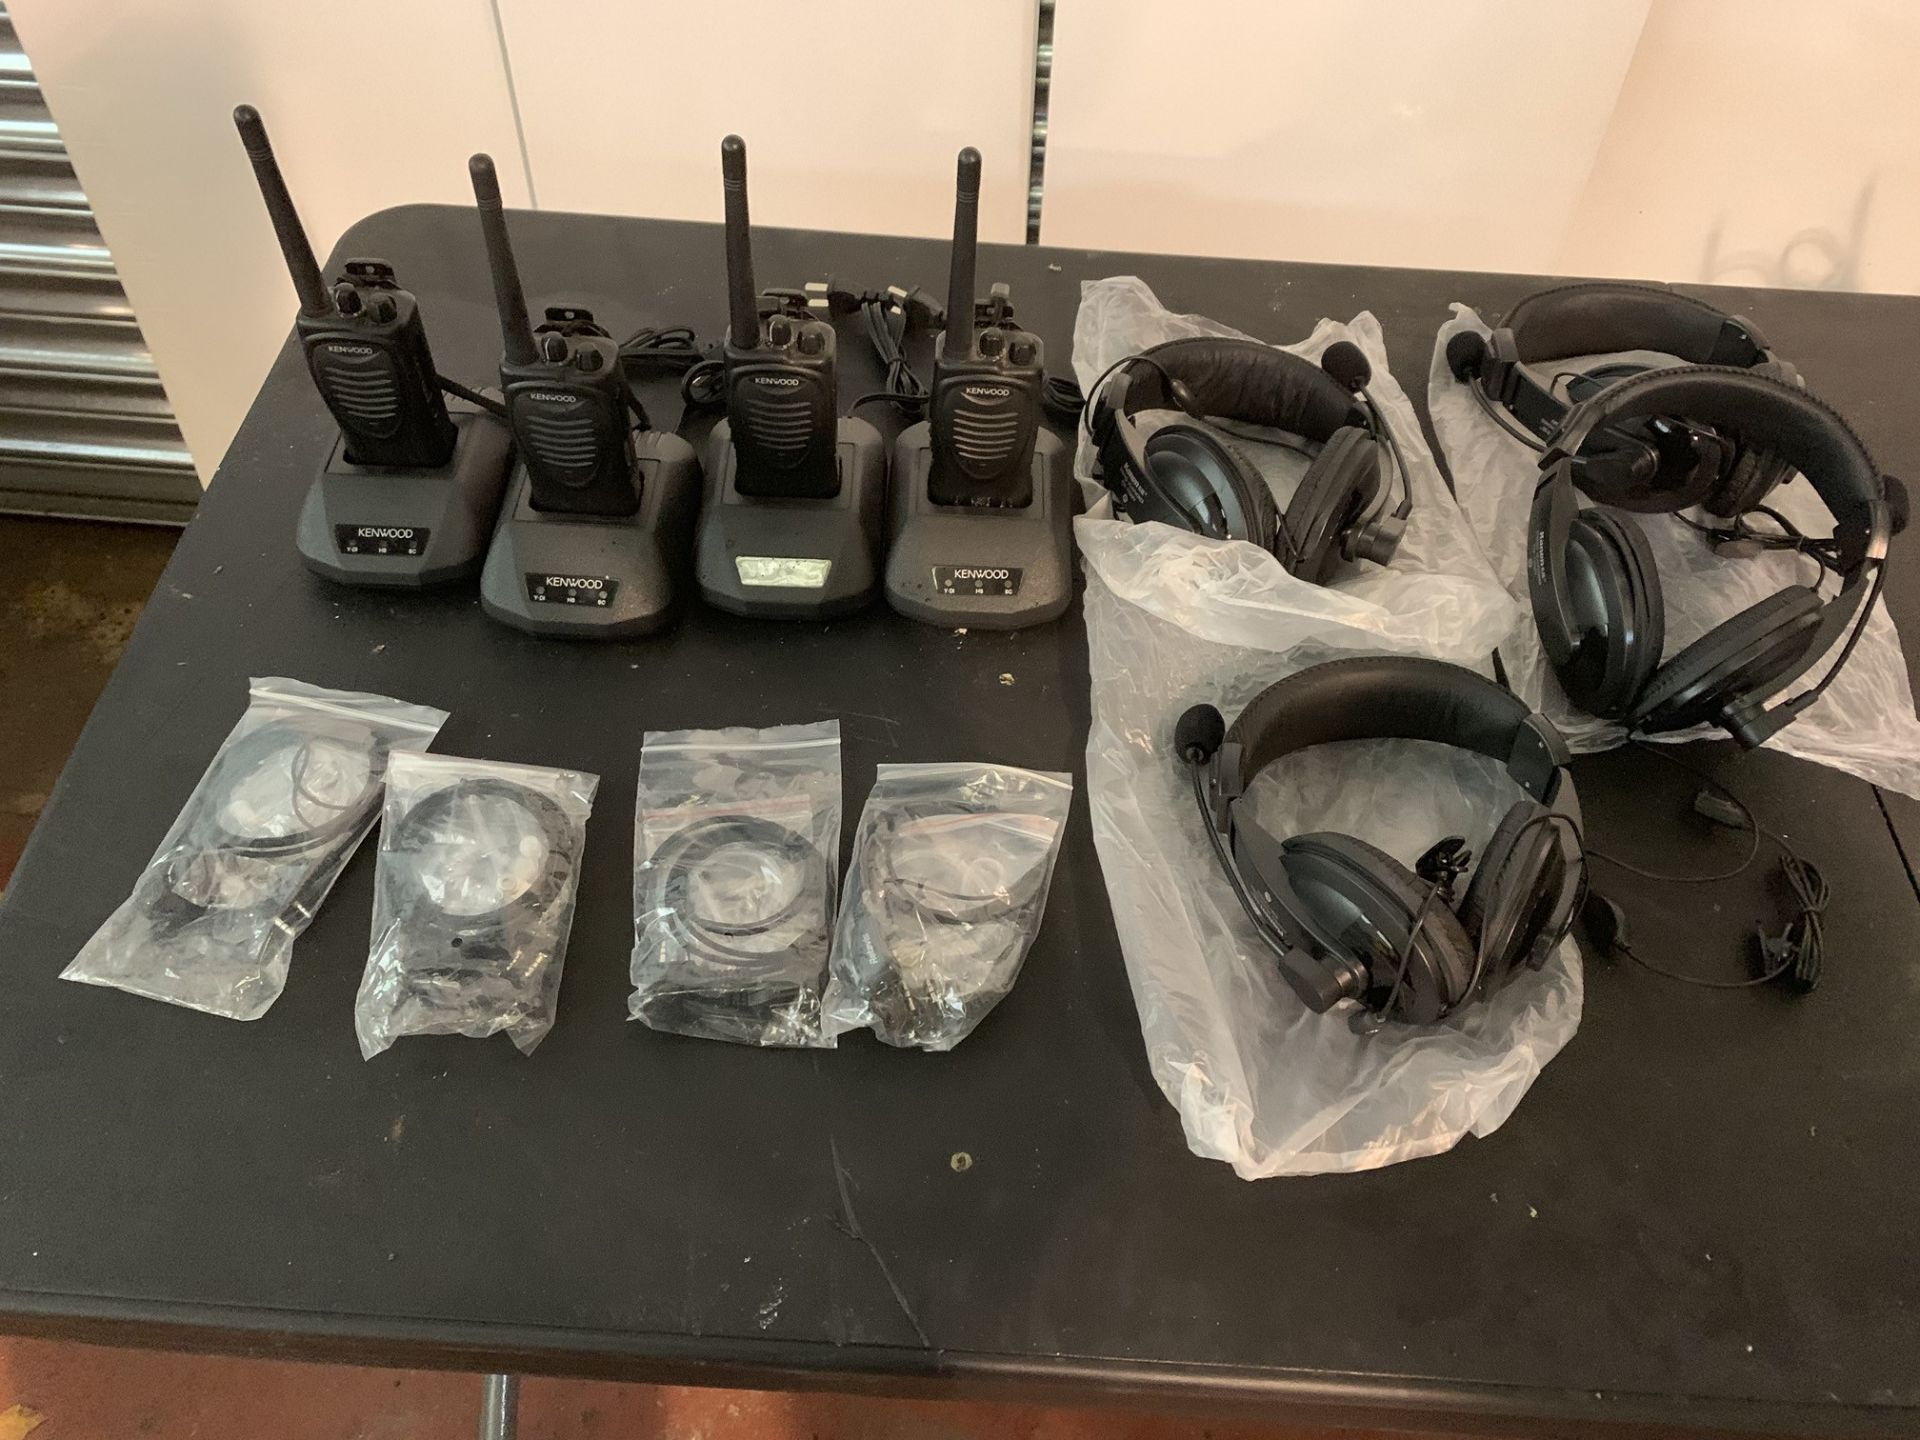 Lot 21 - 4 x KENWOOD RADIOS WITH 4 X EARPIECES & 4 X KANEN HEADPHONE